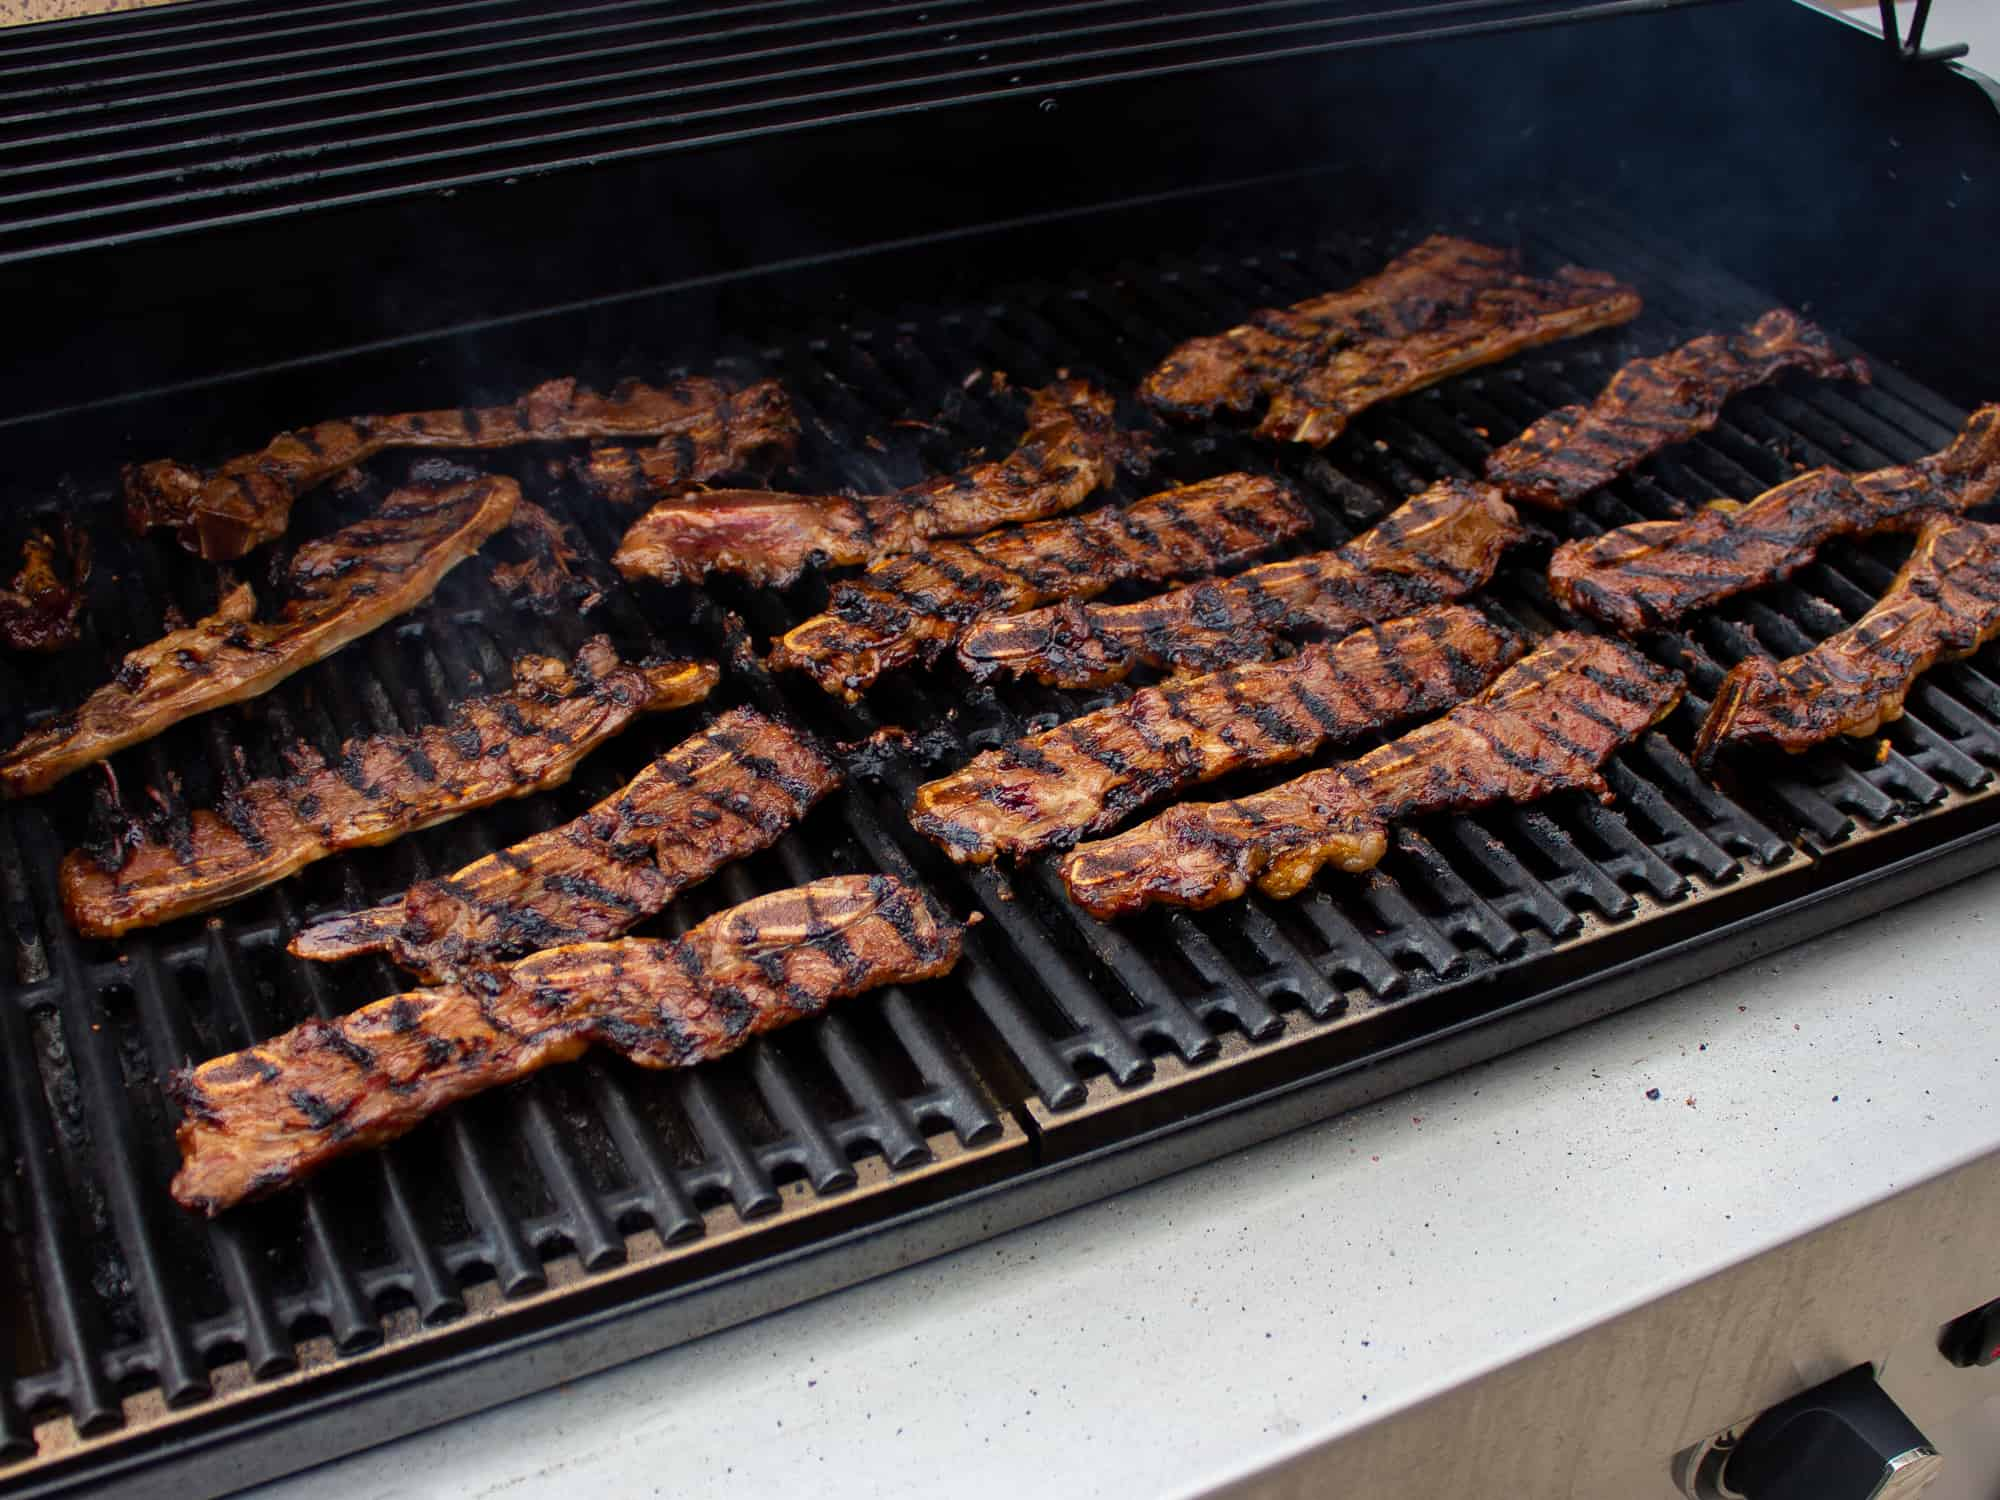 Make sure the kalbi marinates for a few hours before grilling